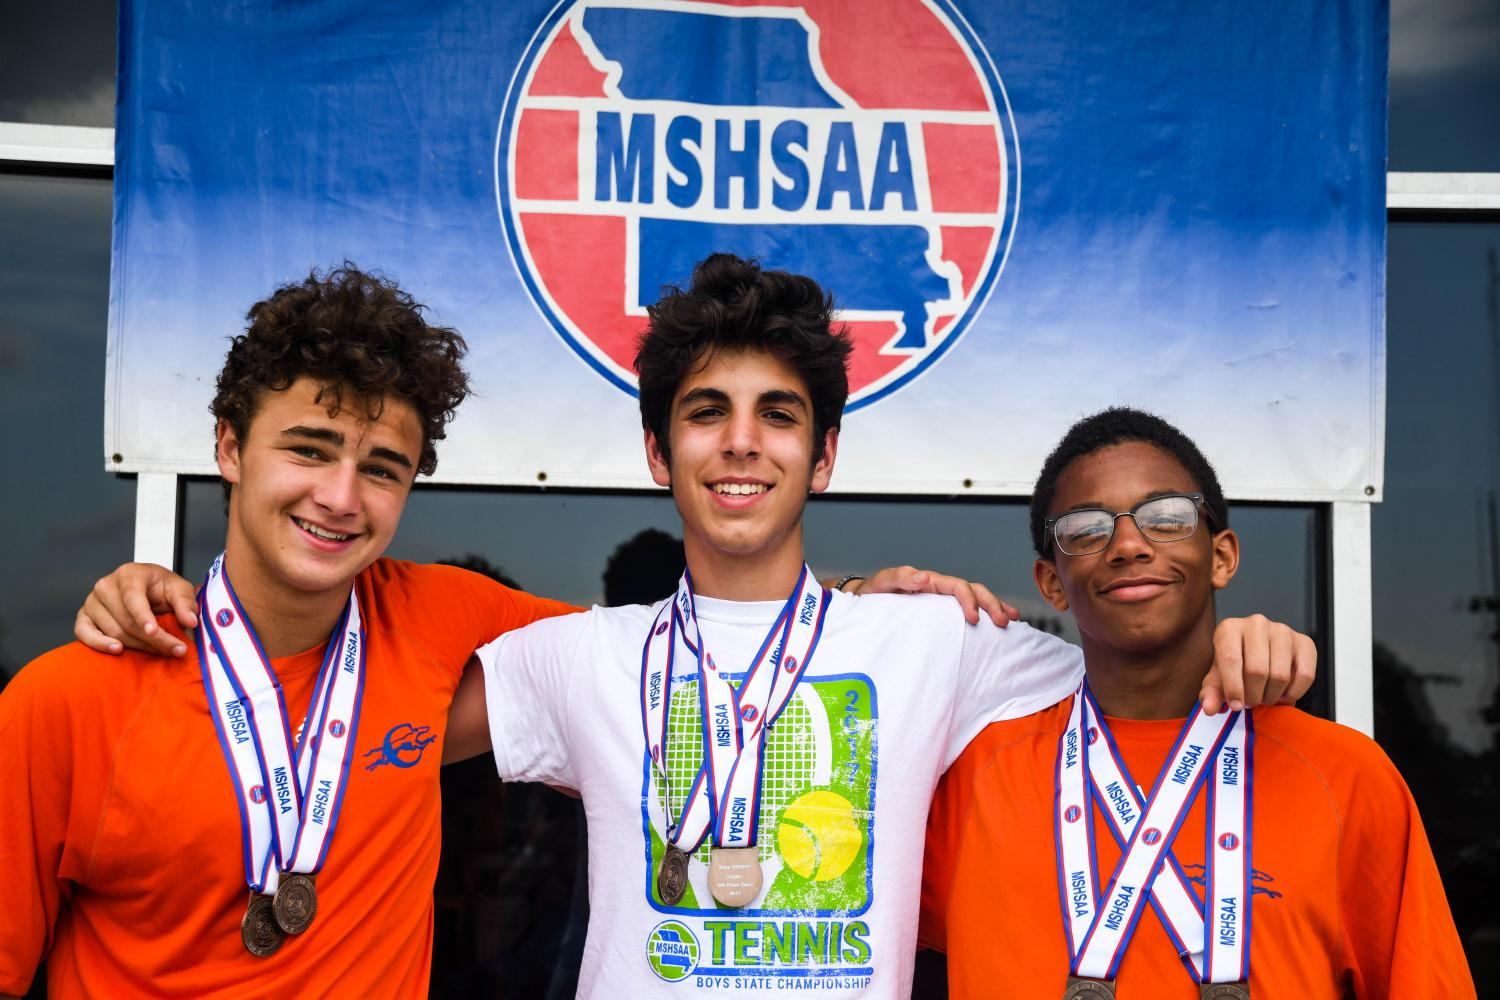 CHS boys' varsity tennis team after state tournament.  Erik James (left), Noah Brown (middle), and Angelo Vidal (right).  Photo by Michael Melinger.